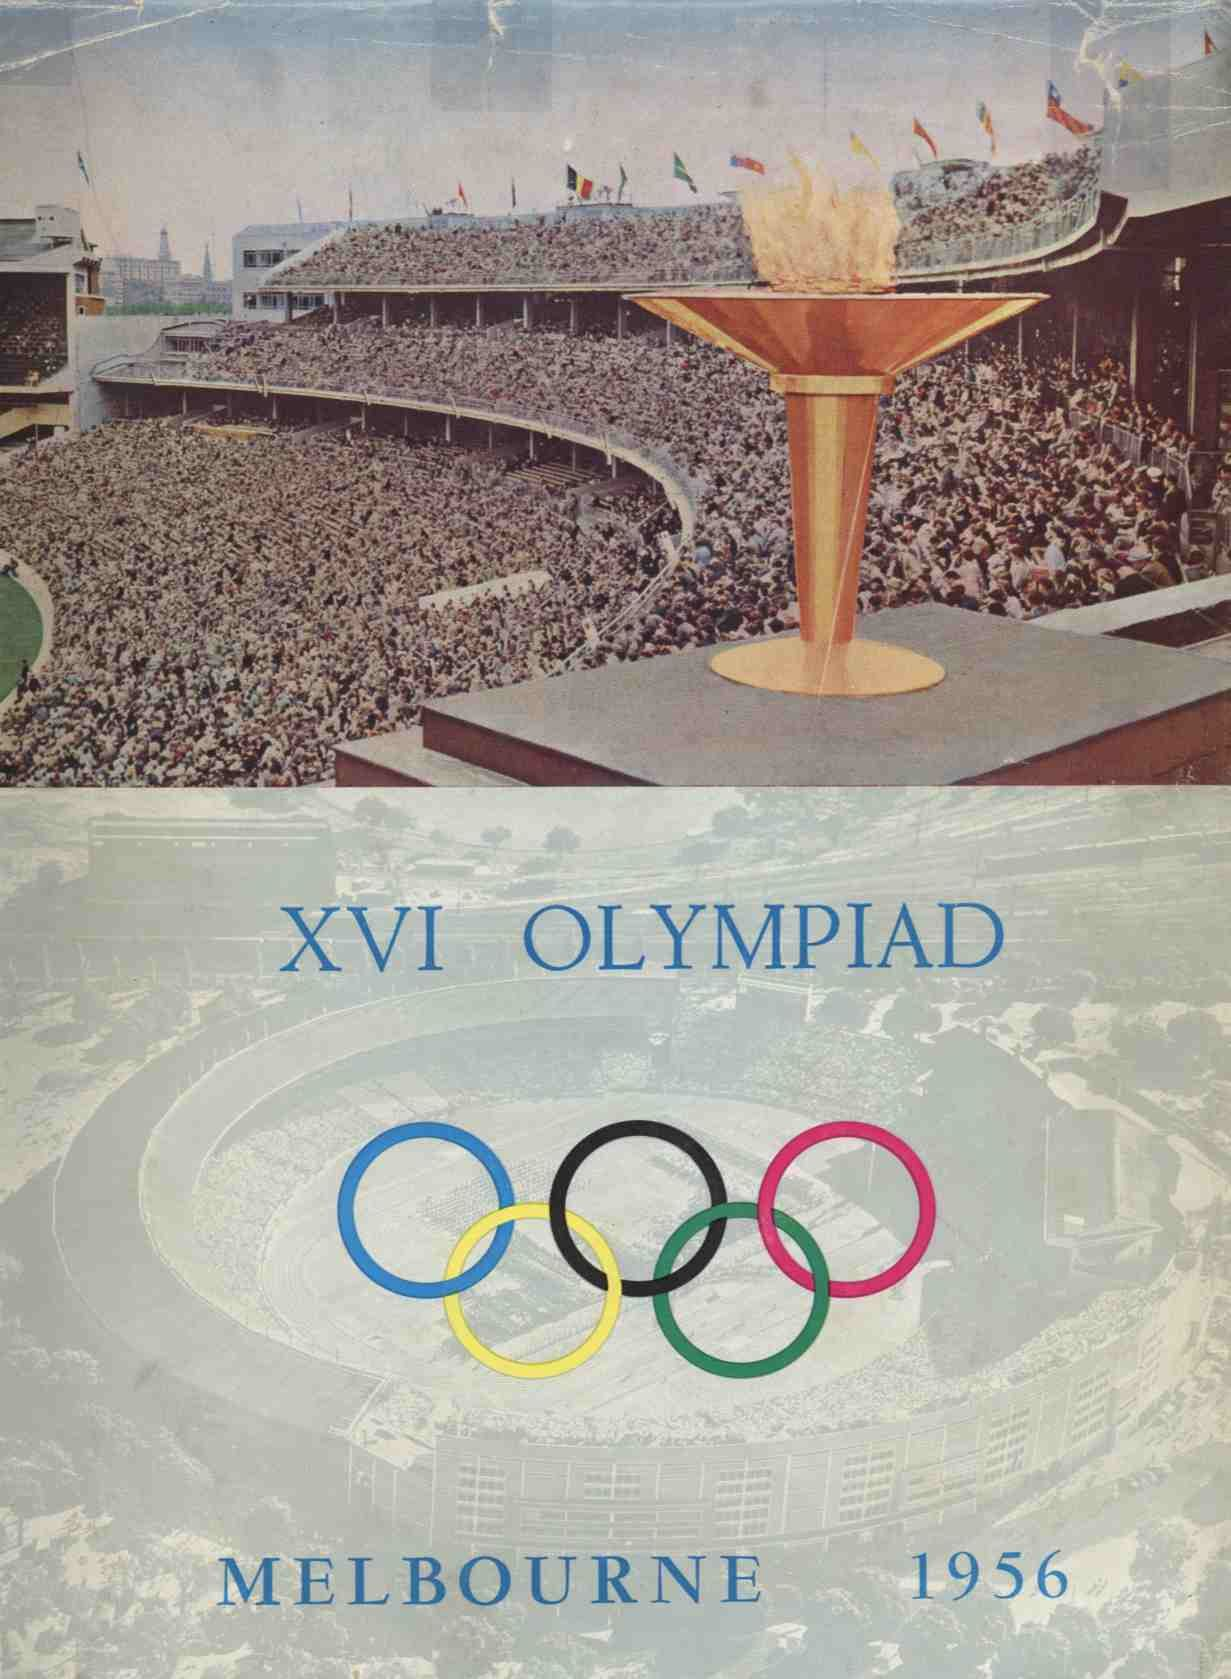 The cover to the Official Report on the 1956 Olympic Games